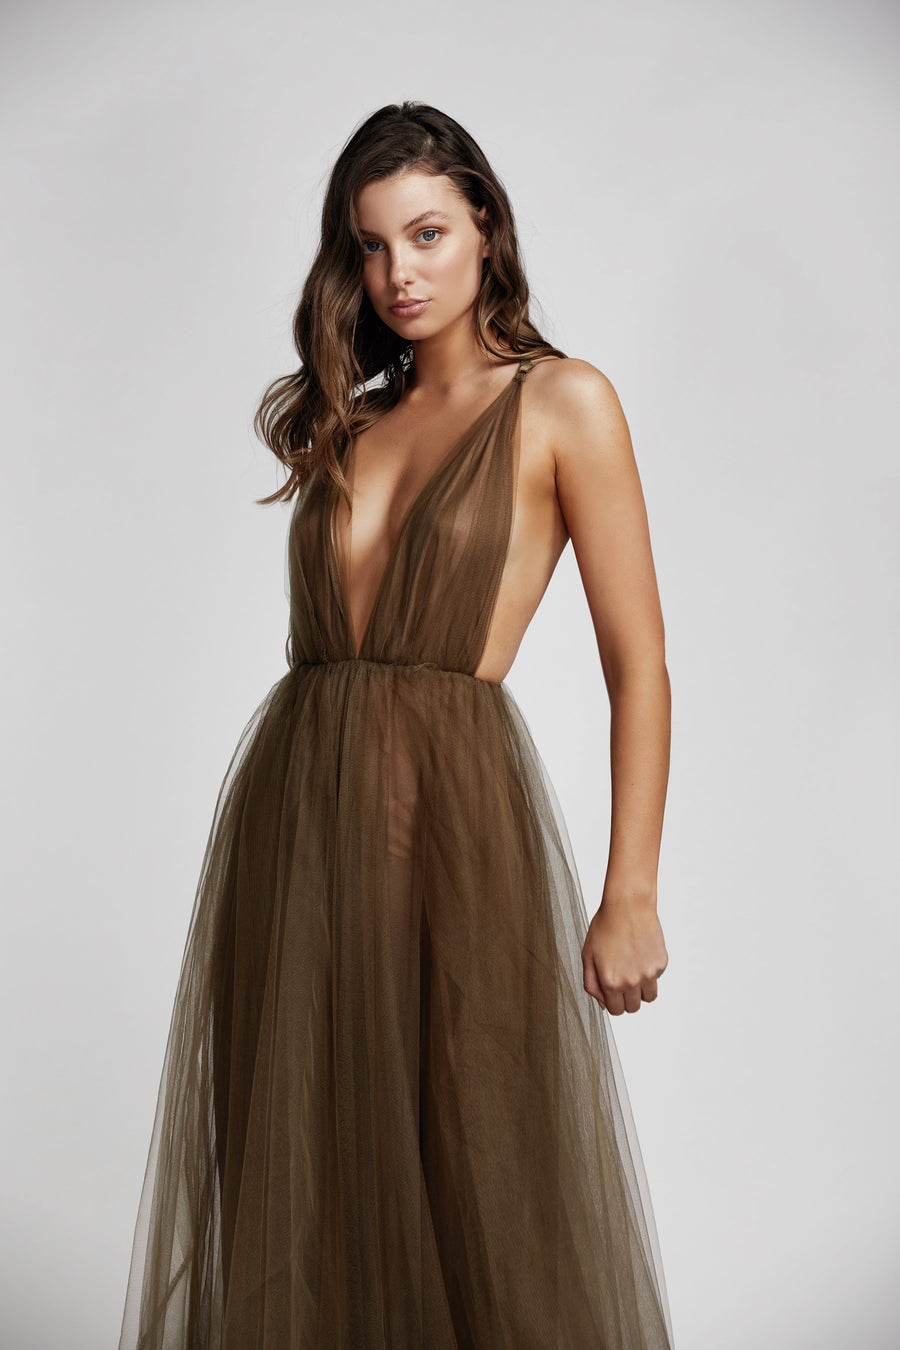 Violeta Dress - Olive Green (More Coming Soon)